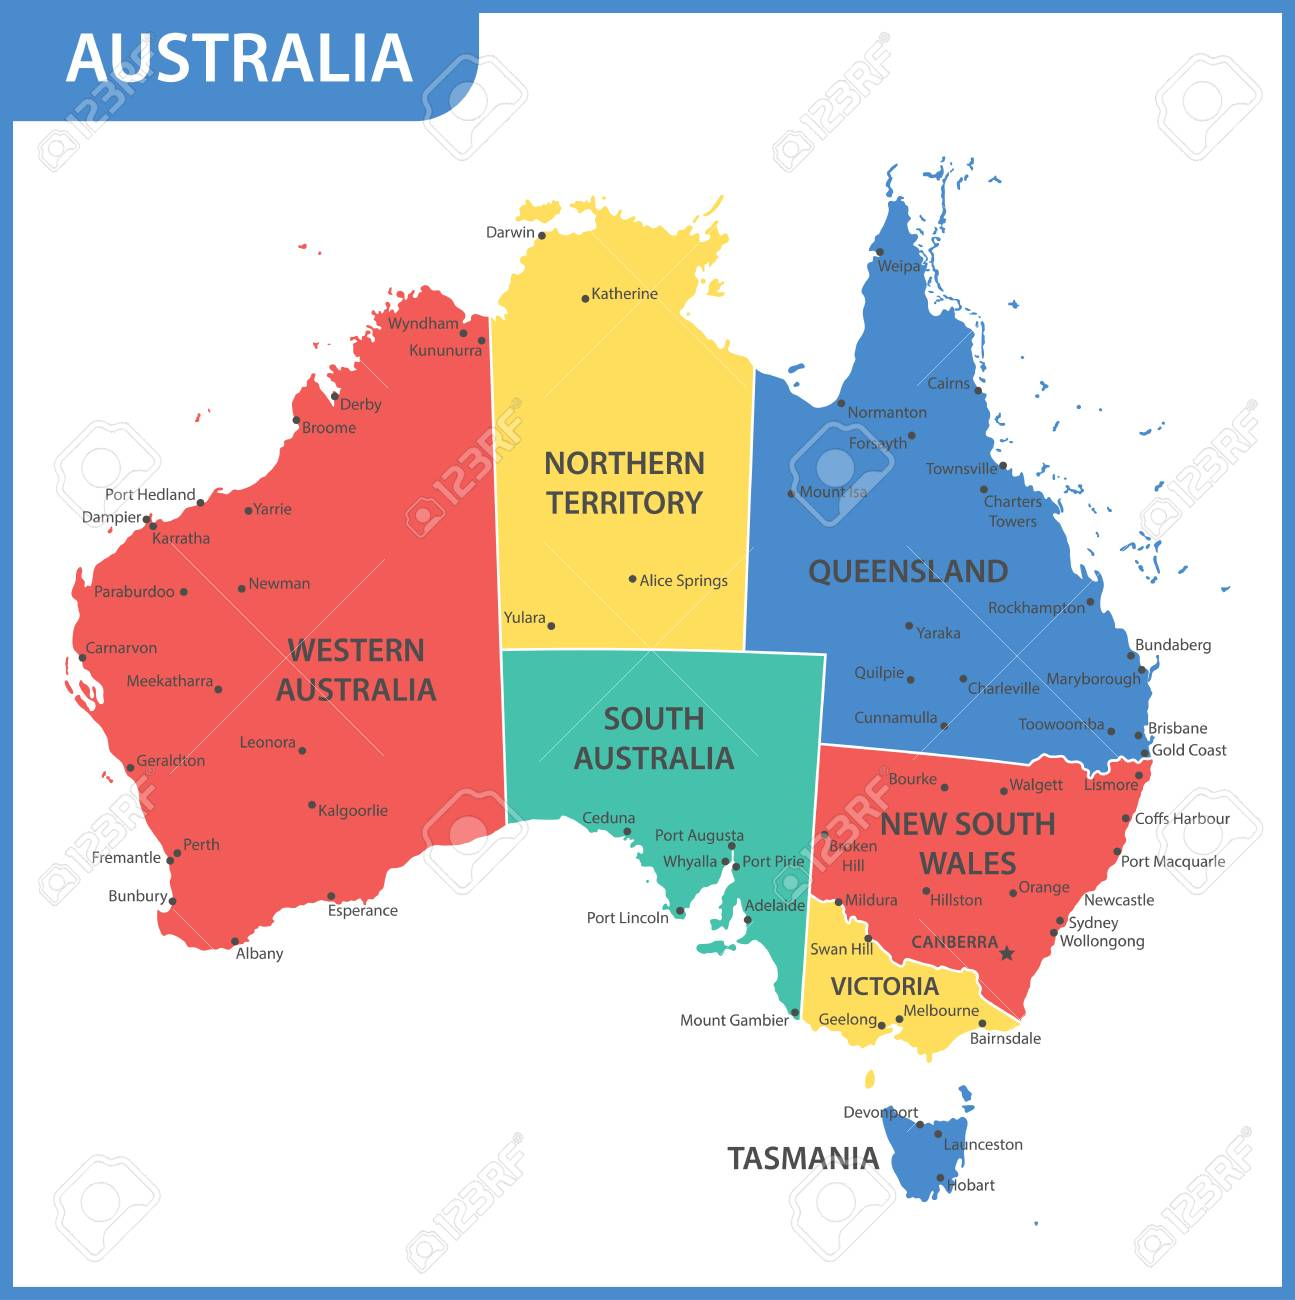 Australia Map Capitals.The Detailed Map Of The Australia With Regions Or States And